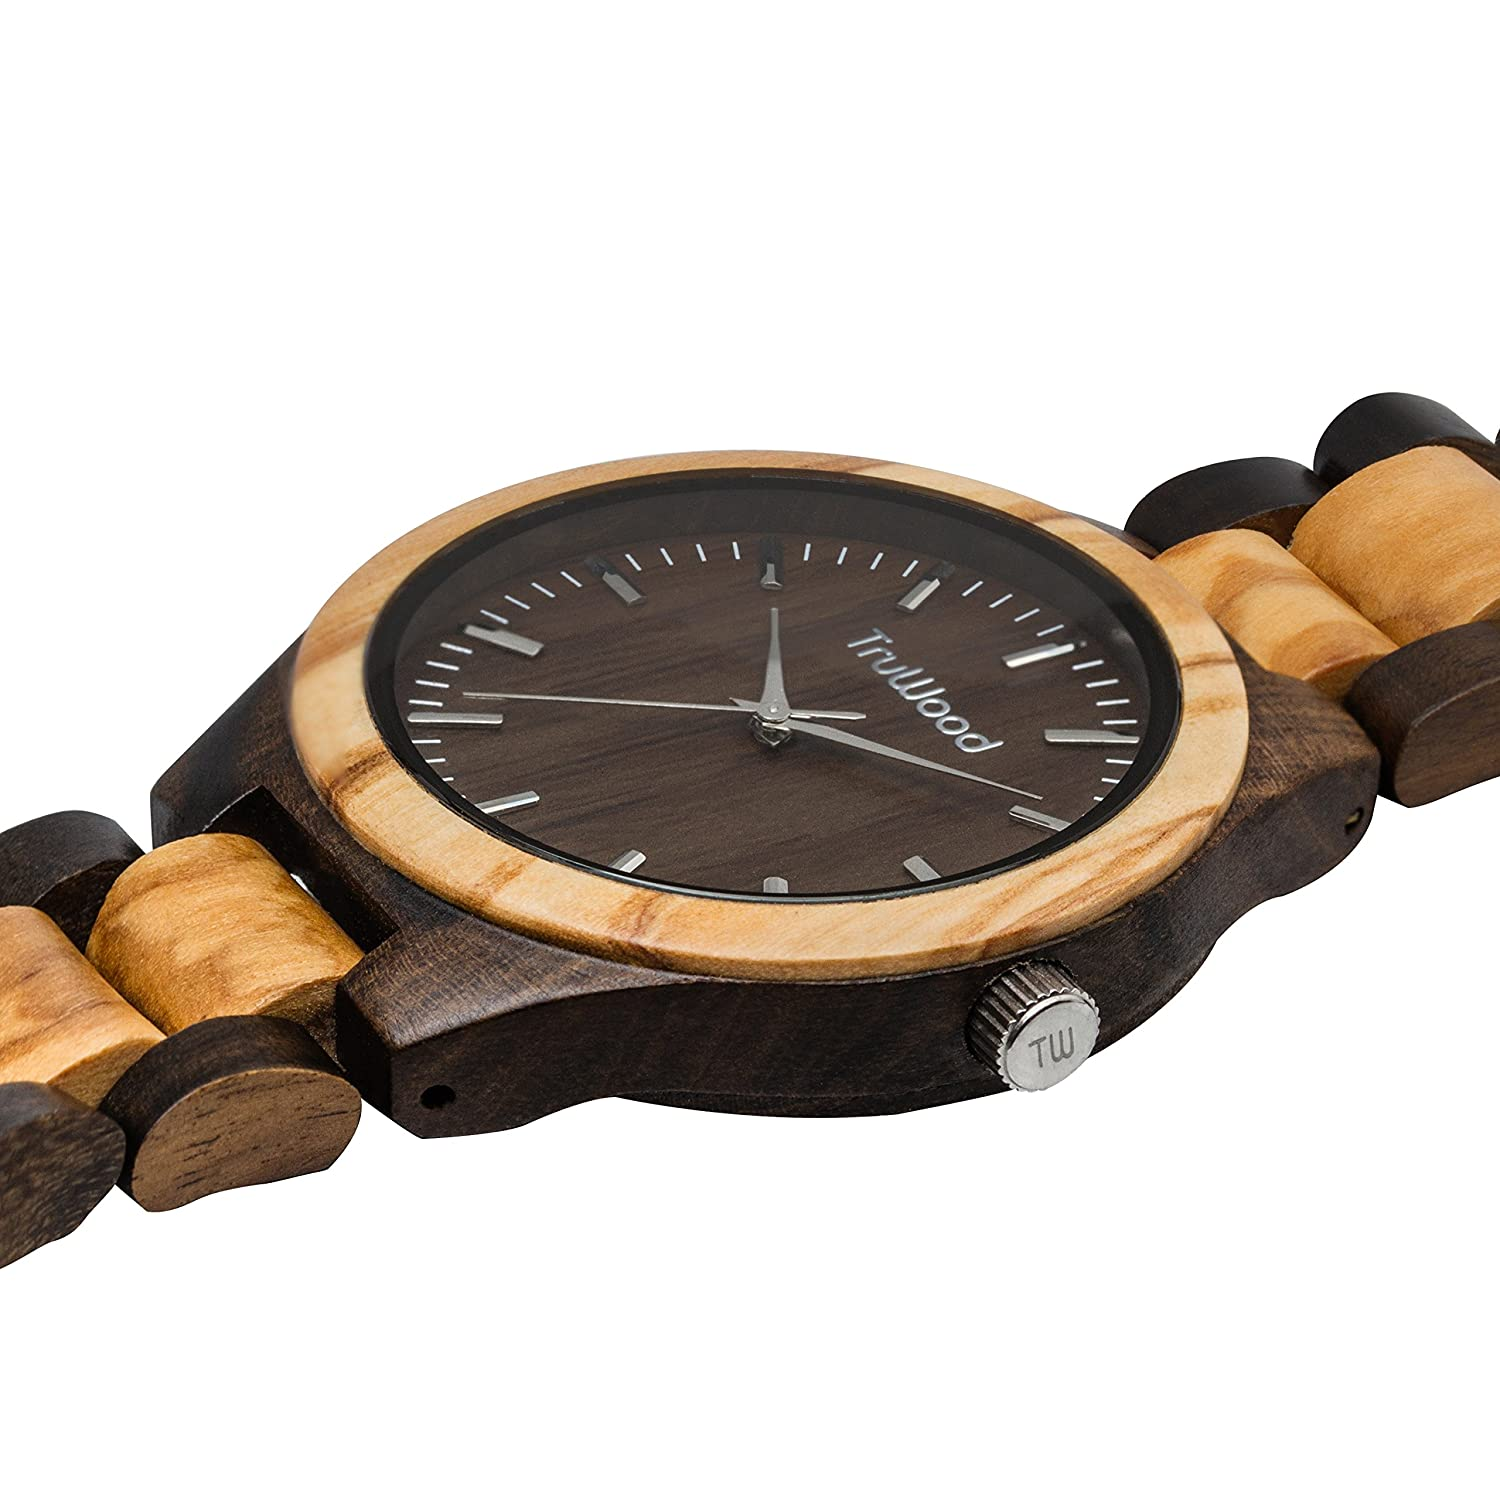 with retro wood vosicar watches genuine movement dp new japan leather bamboo ideashop watch ae band quartz true cowhide amazon com wooden fashion casual creative